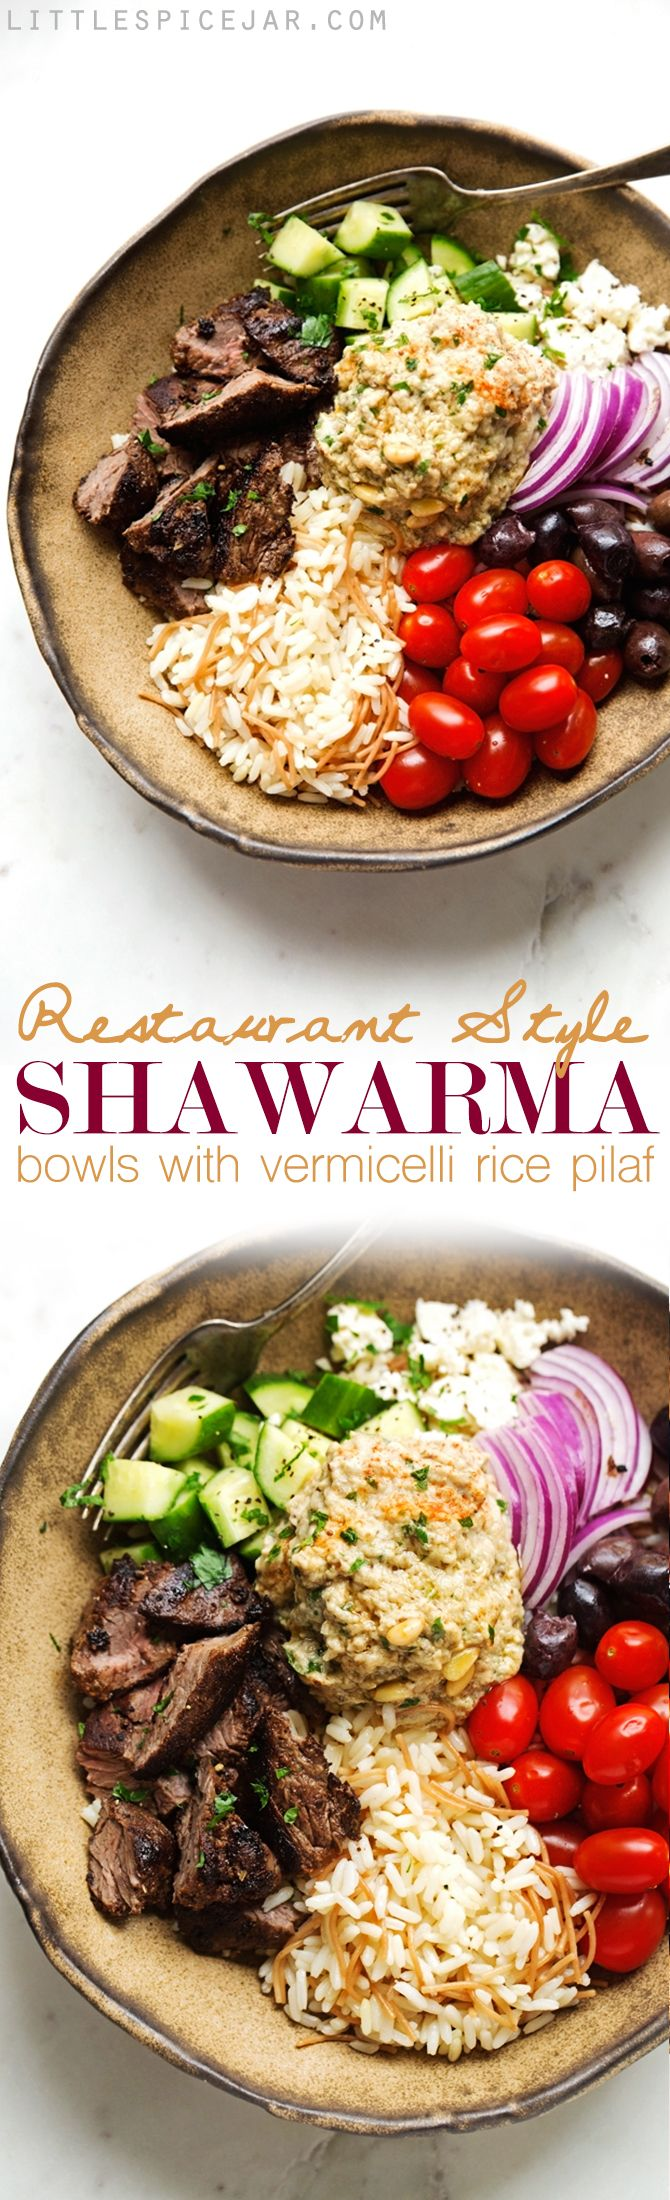 Beef Shawarma with Vermicelli Rice Pilaf - A simple shawarma plate just like your favorite restaurants, topped with tons of veggies! Perfect for lunches too! #shawarma #shawarmabowl #vermicellirice | Littlespicejar.com